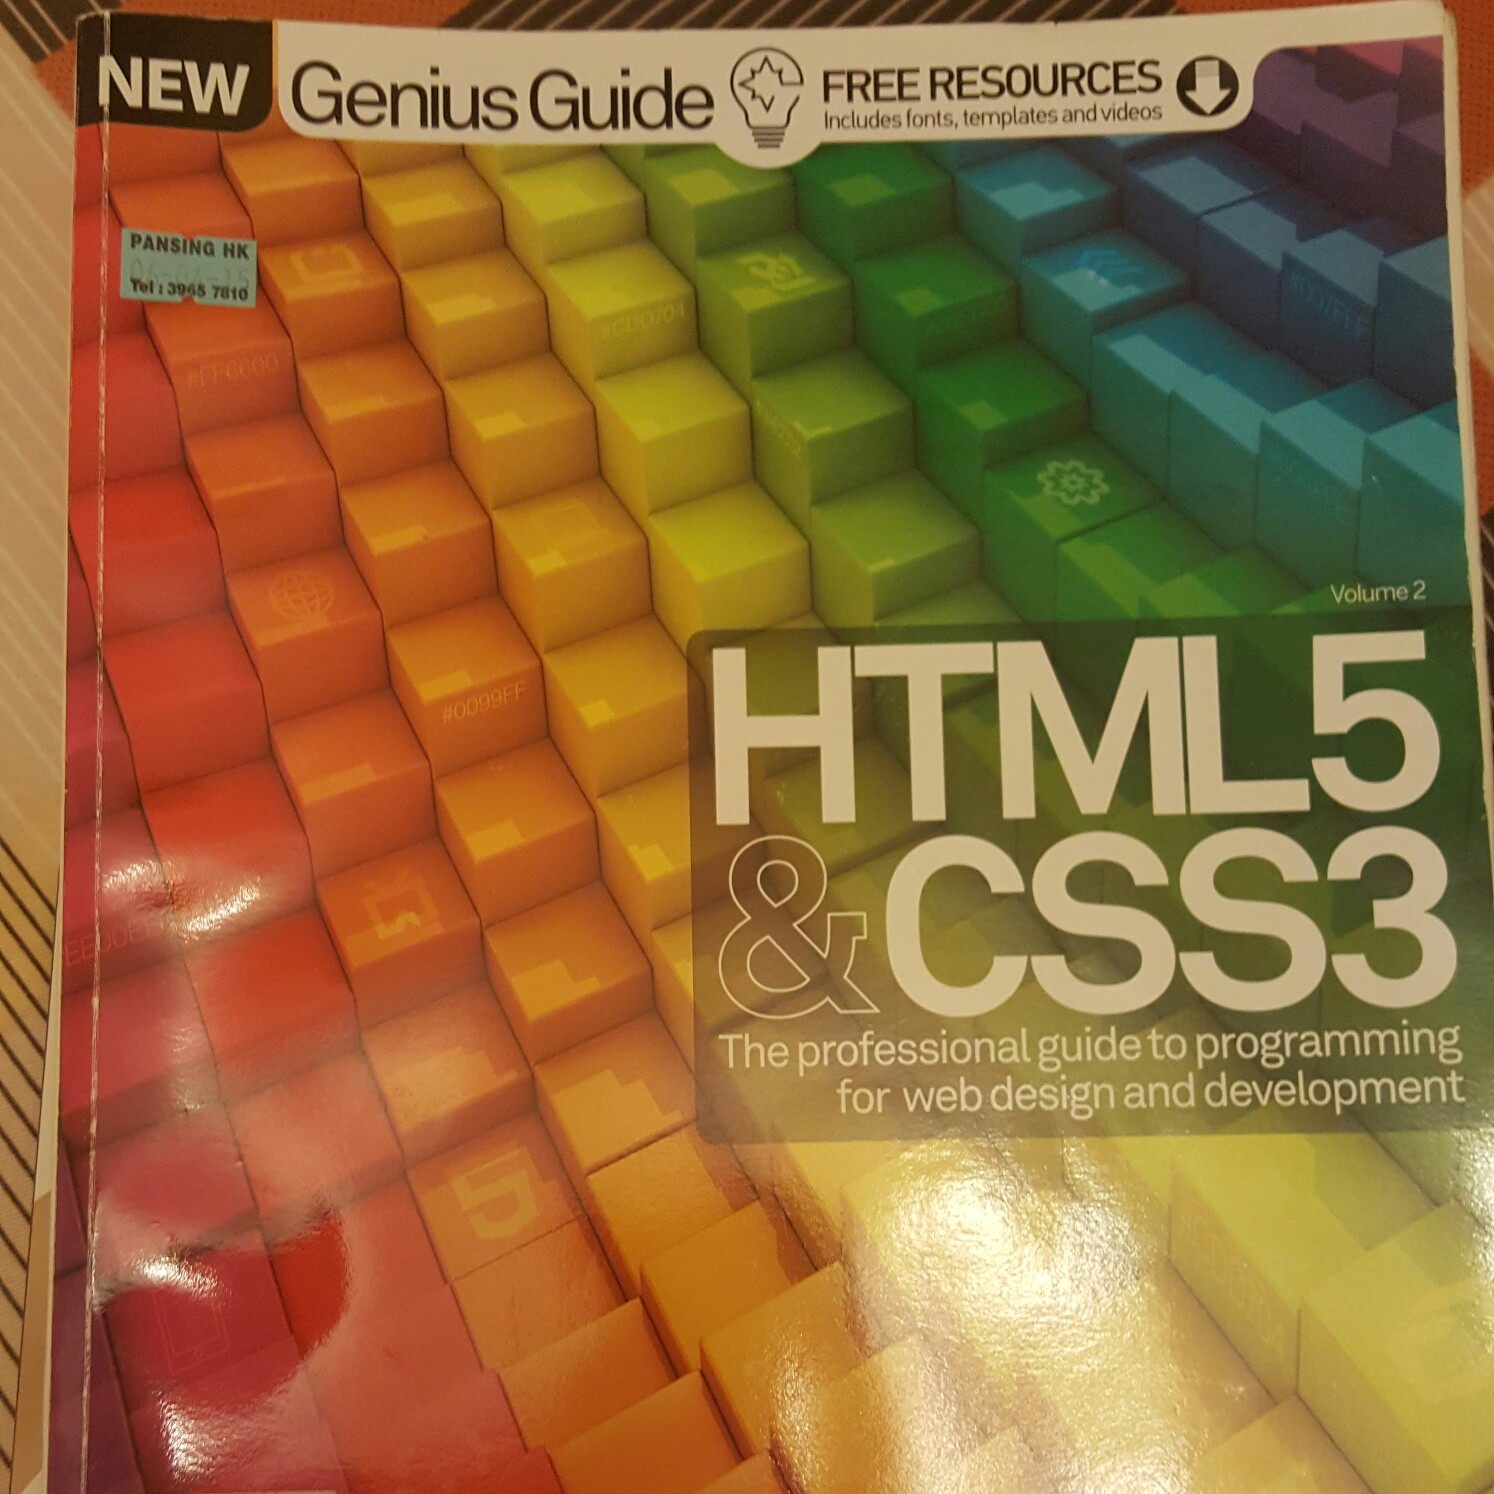 Html5 CSS3 Tool Book image